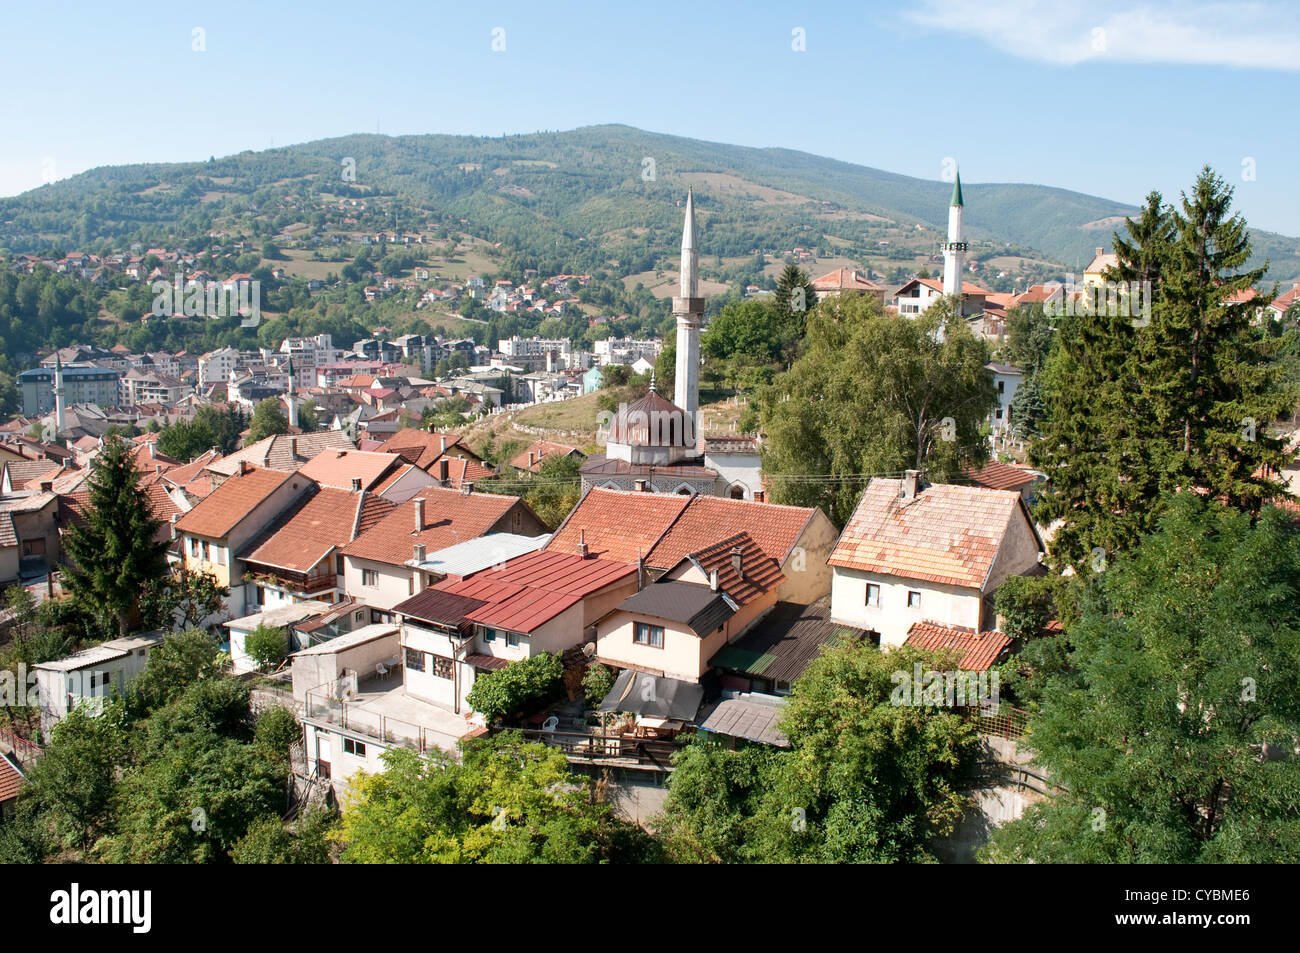 View of old Travnik, Bosnia and Herzegovina - Stock Image